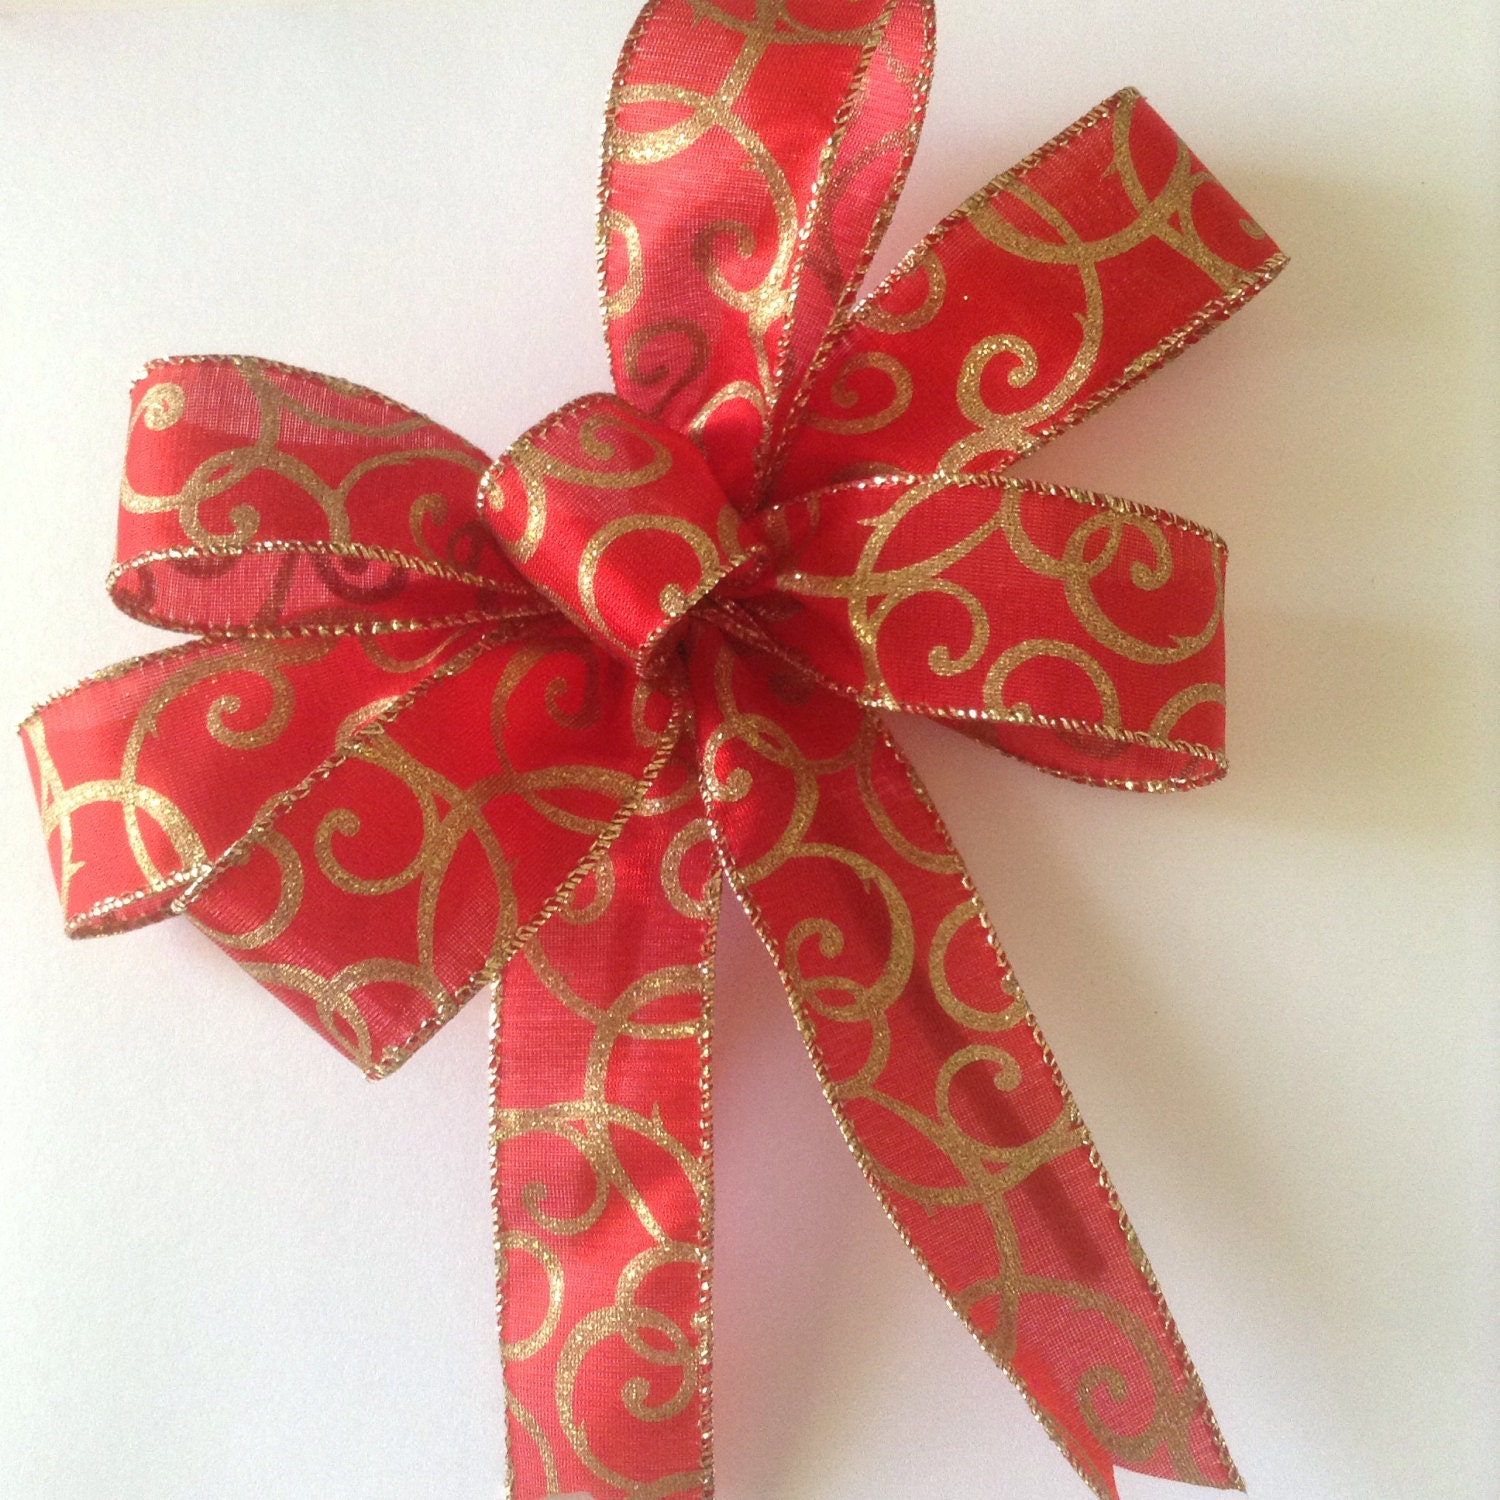 christmas bows red and gold bows decorative bows by craftsbybeba. Black Bedroom Furniture Sets. Home Design Ideas